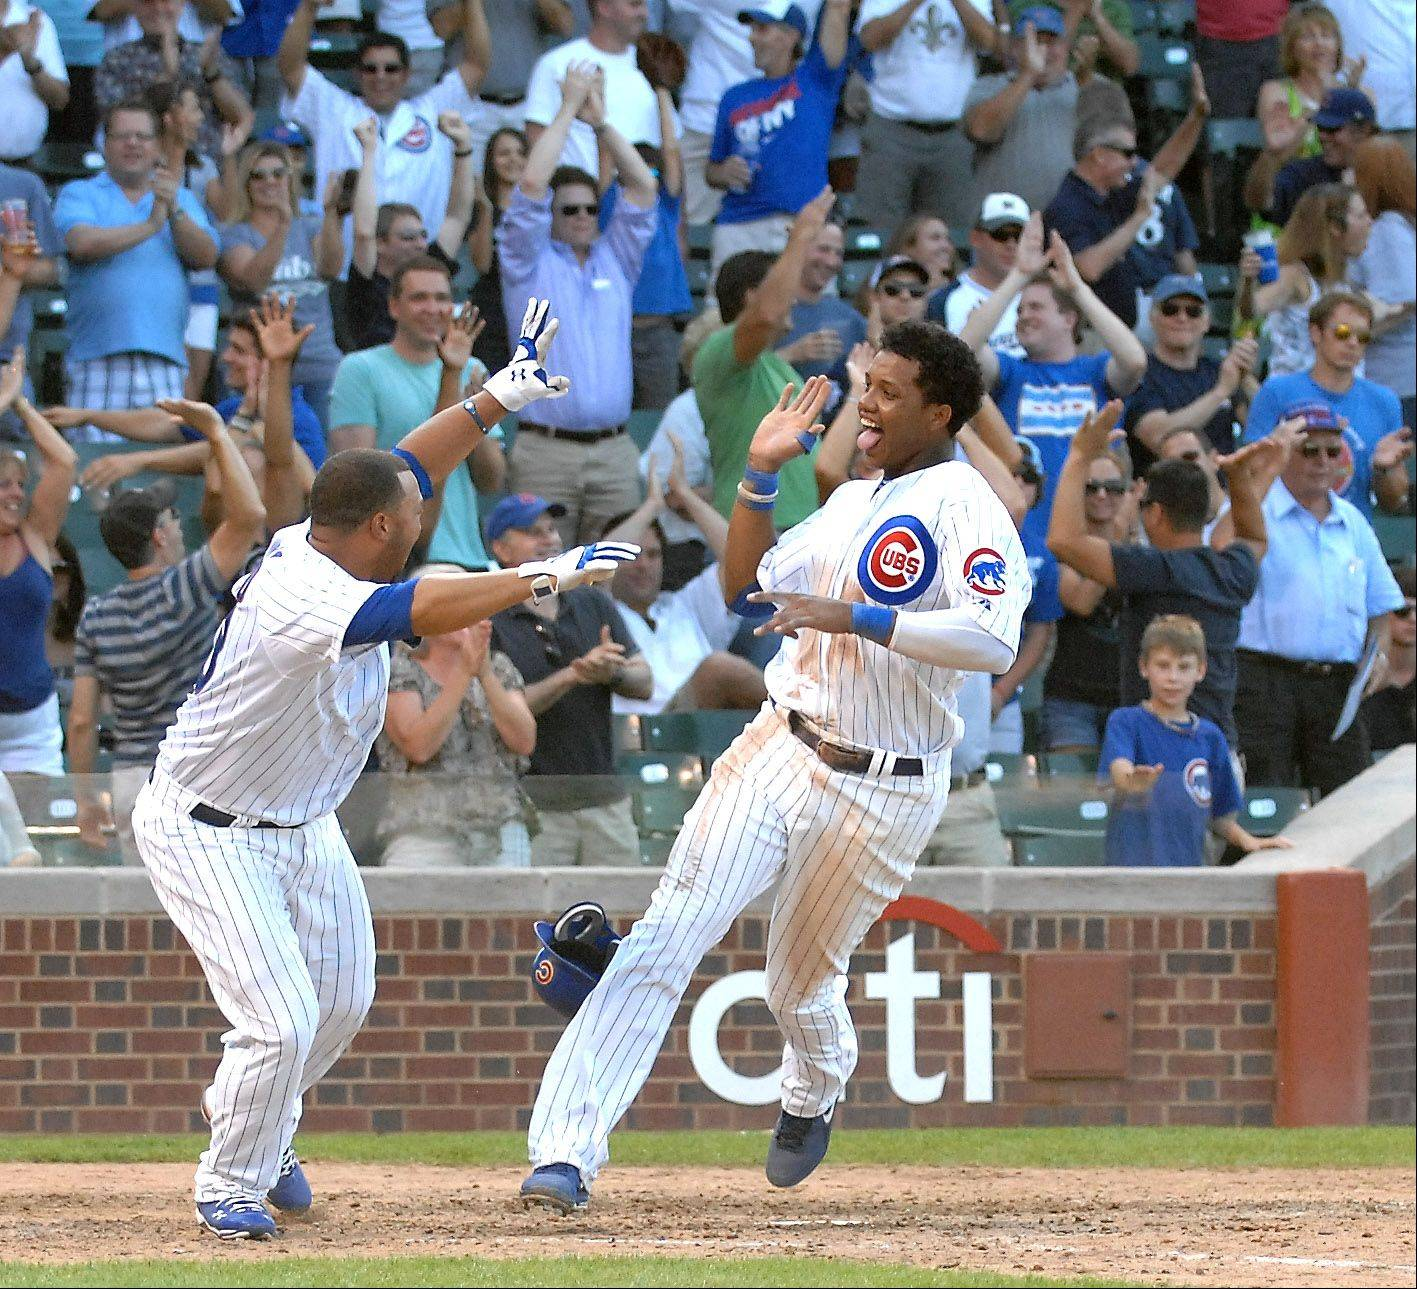 Daily Herald photographer Rick West won an Illinois Associated Press Media Editors award for this shot of Chicago Cubs shortstop Starlin Castro (13) crossing the plate as the winning run in the bottom of the ninth on a hit by Alfonso Soriano to beat Milwaukee 12-11 at Wrigley Field in Chicago.